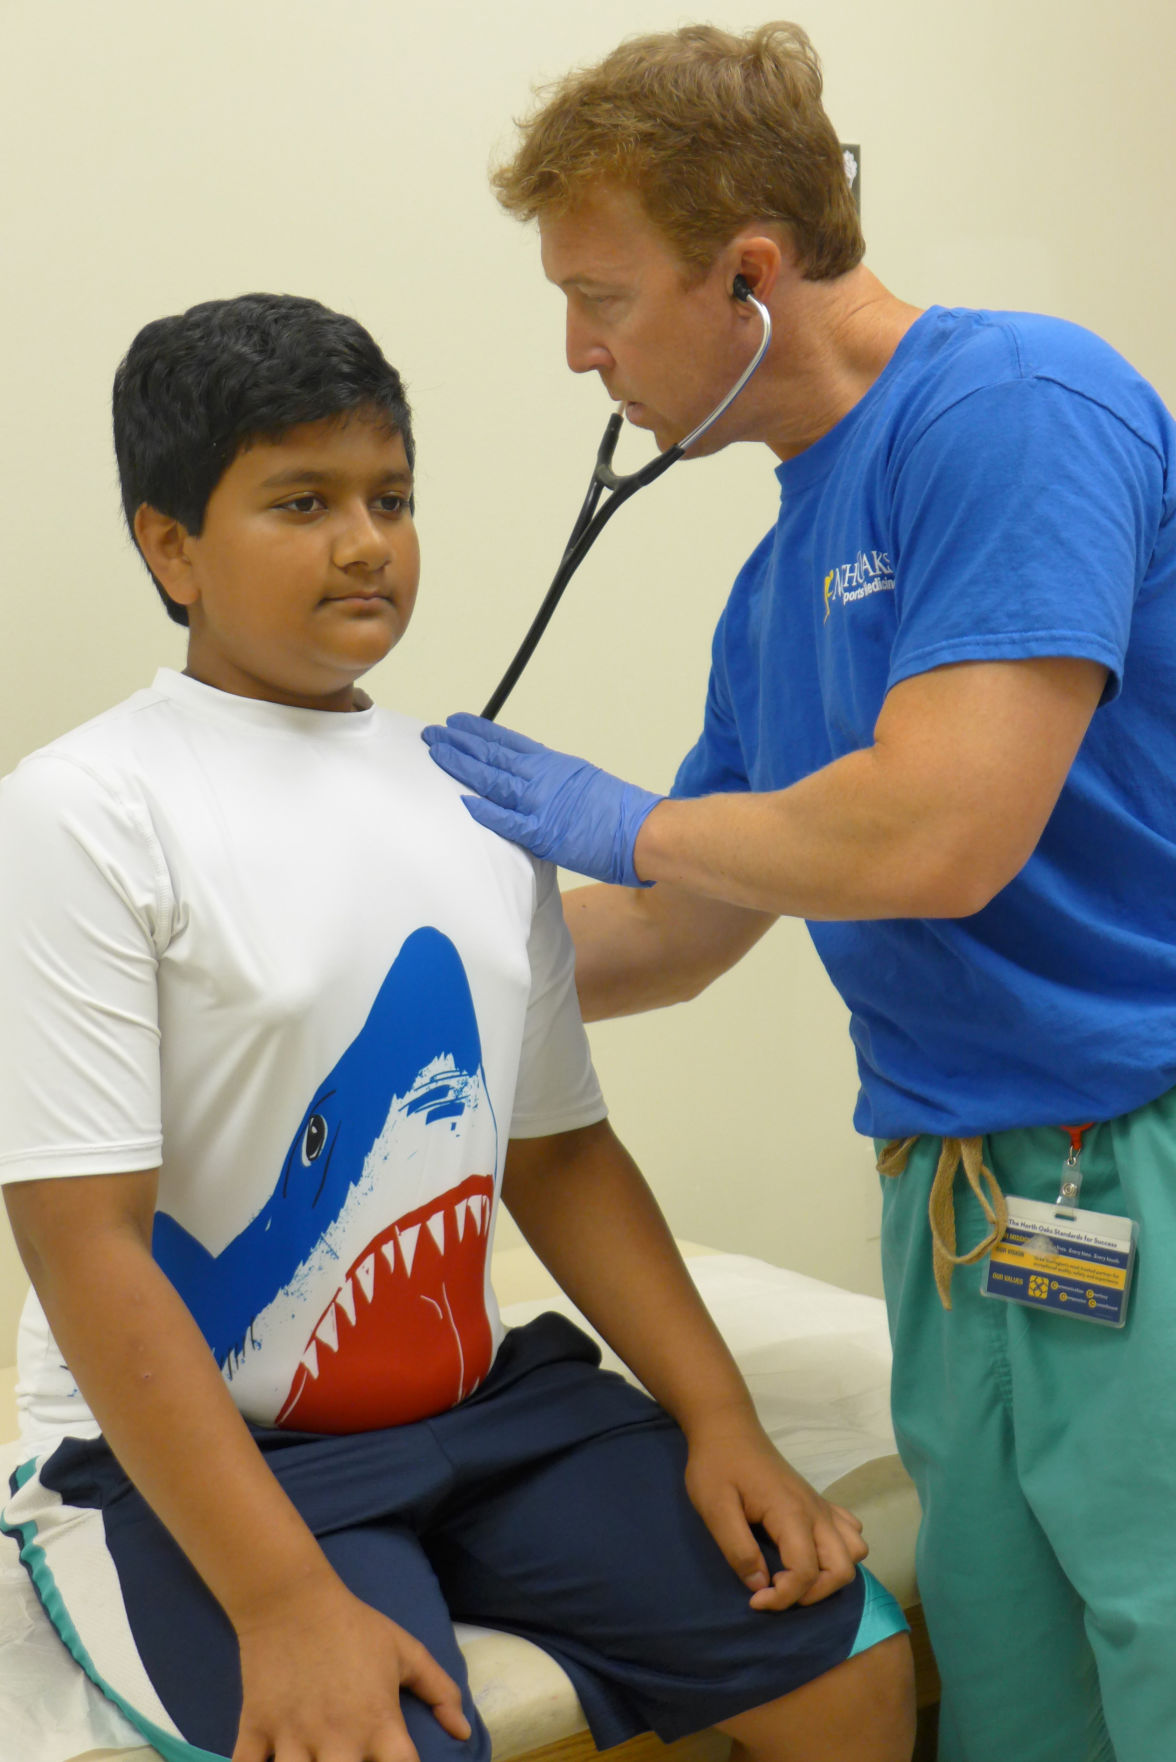 Student Athletes Need Sports Physicals Before Hitting the